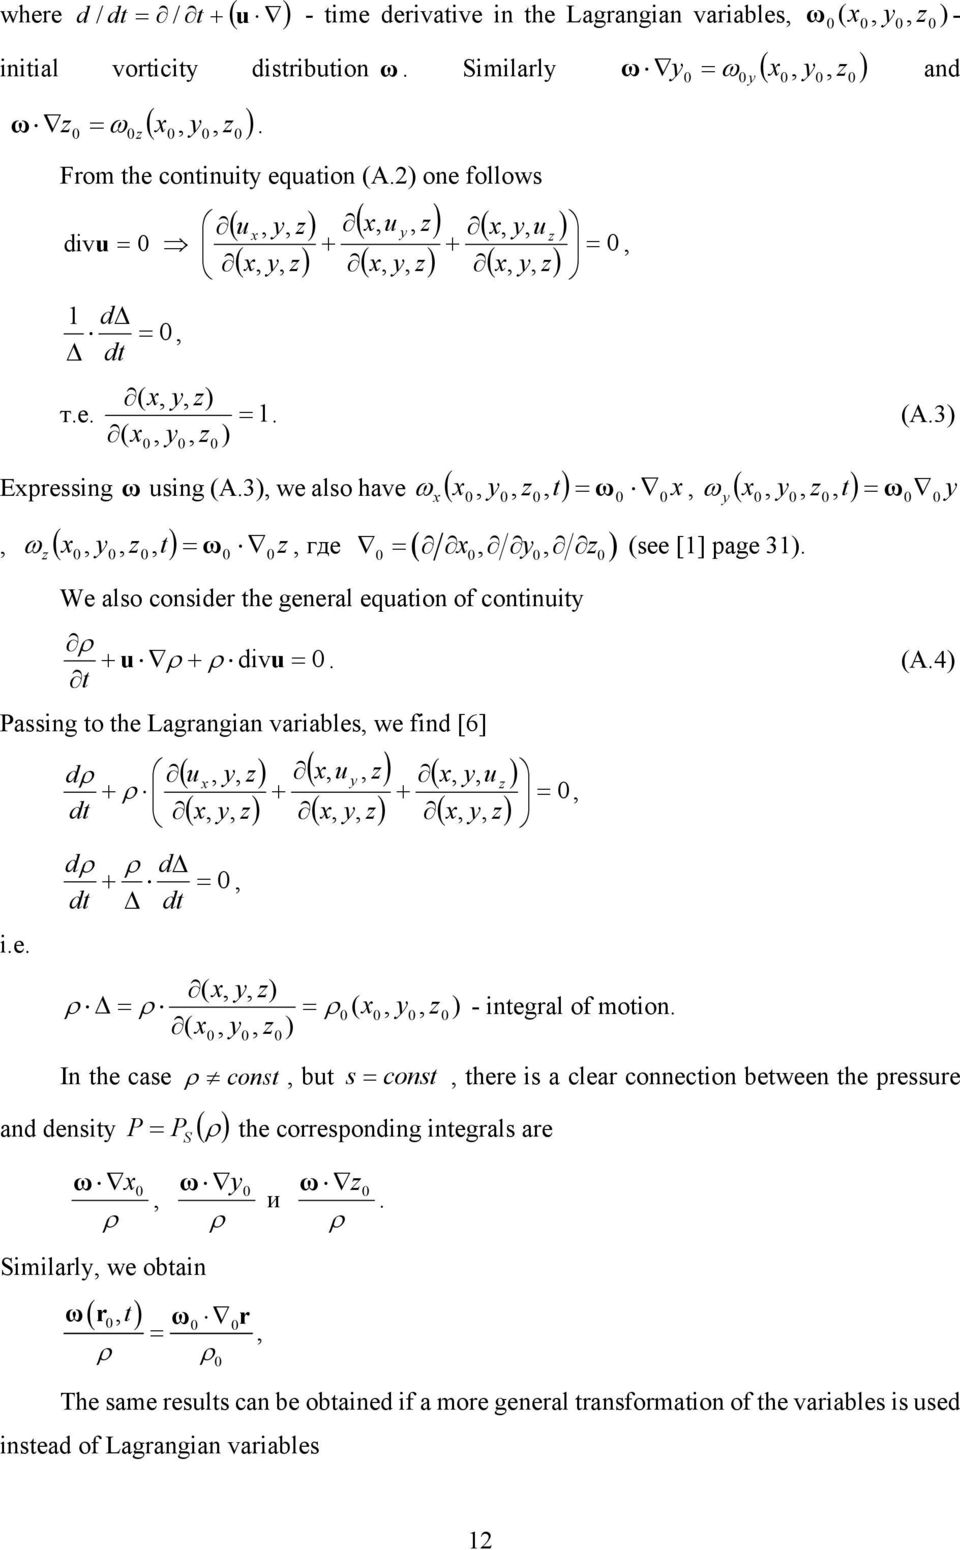 We also consider the general equation of continuity y, u diu. (А.4) t Passing to the Lagrangian ariables, we find [6] i.e. d u x, dt x, d d, dt dt x, u y, x, x, u x,, ( x, ) ( x, ) - integral of motion.